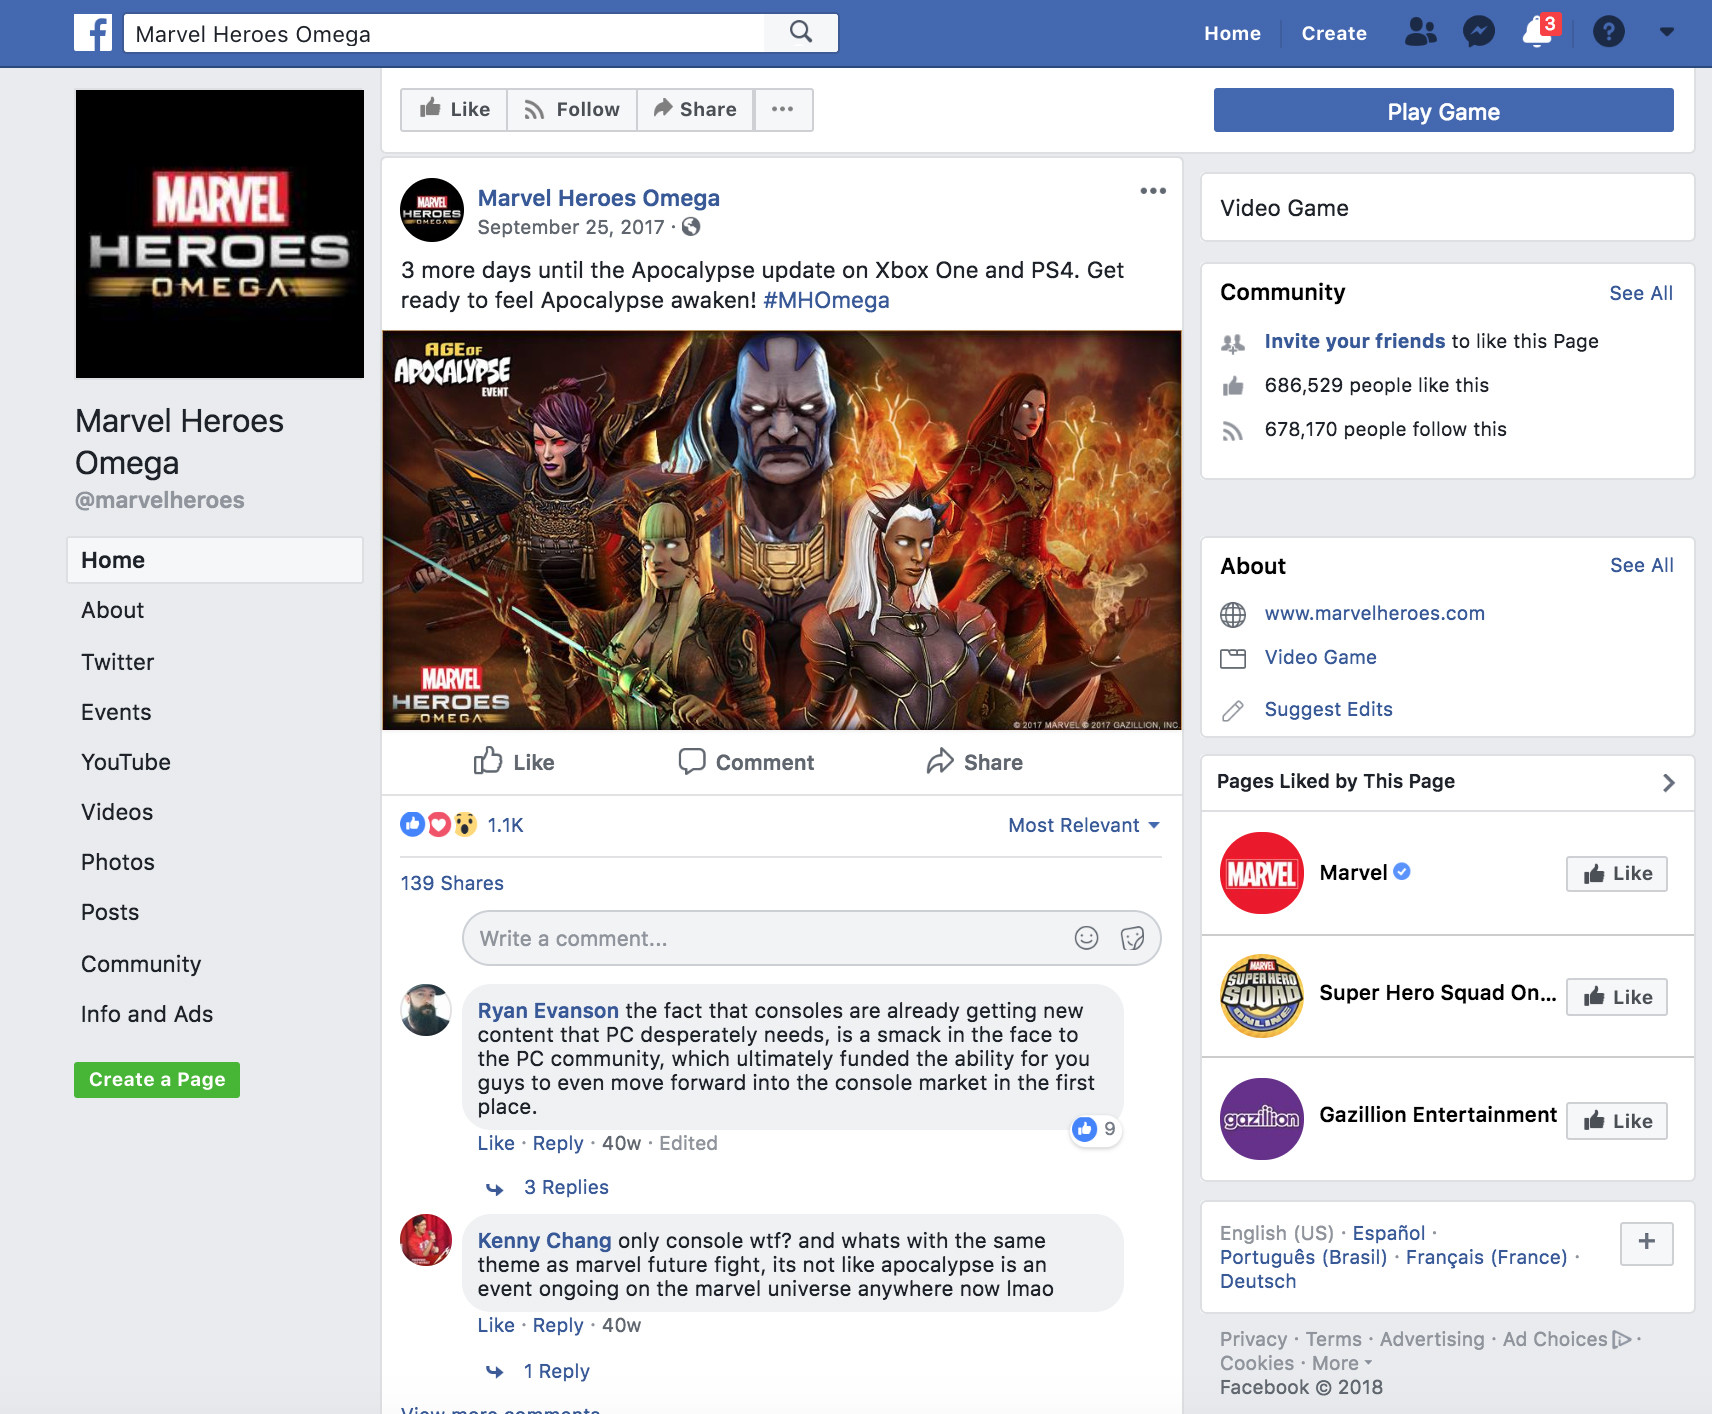 Screenshot of Official Marvel Heroes Omega Facebook Page with assets created.